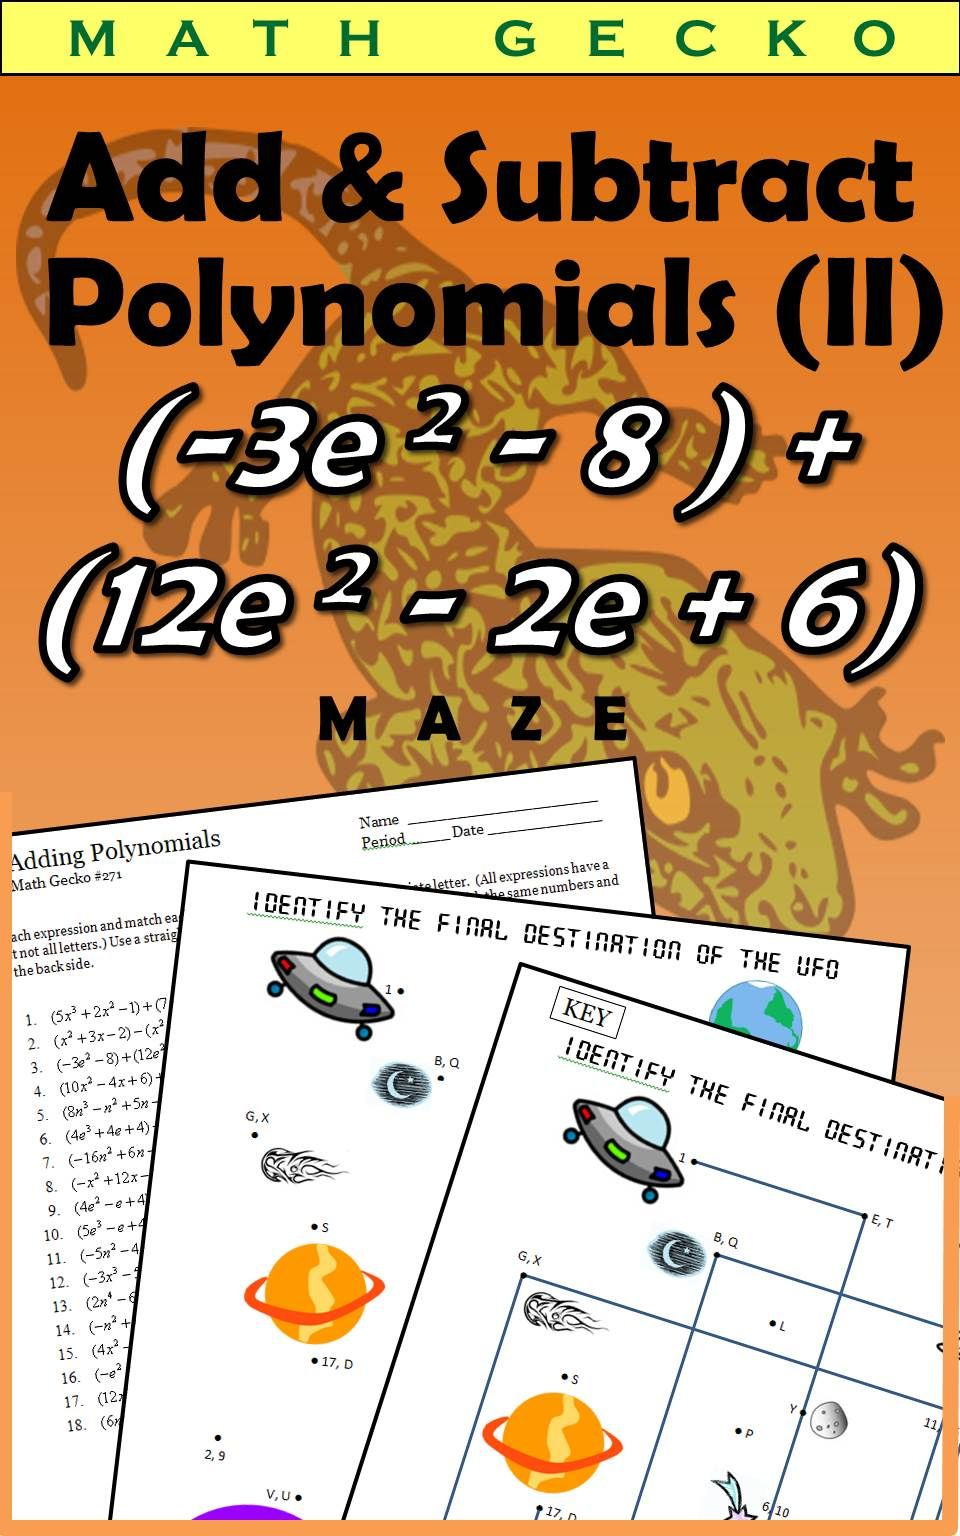 How To Add And Subtract Polynomials 35 Surefire Examples Adding And Subtracting Polynomials Polynomials Adding And Subtracting